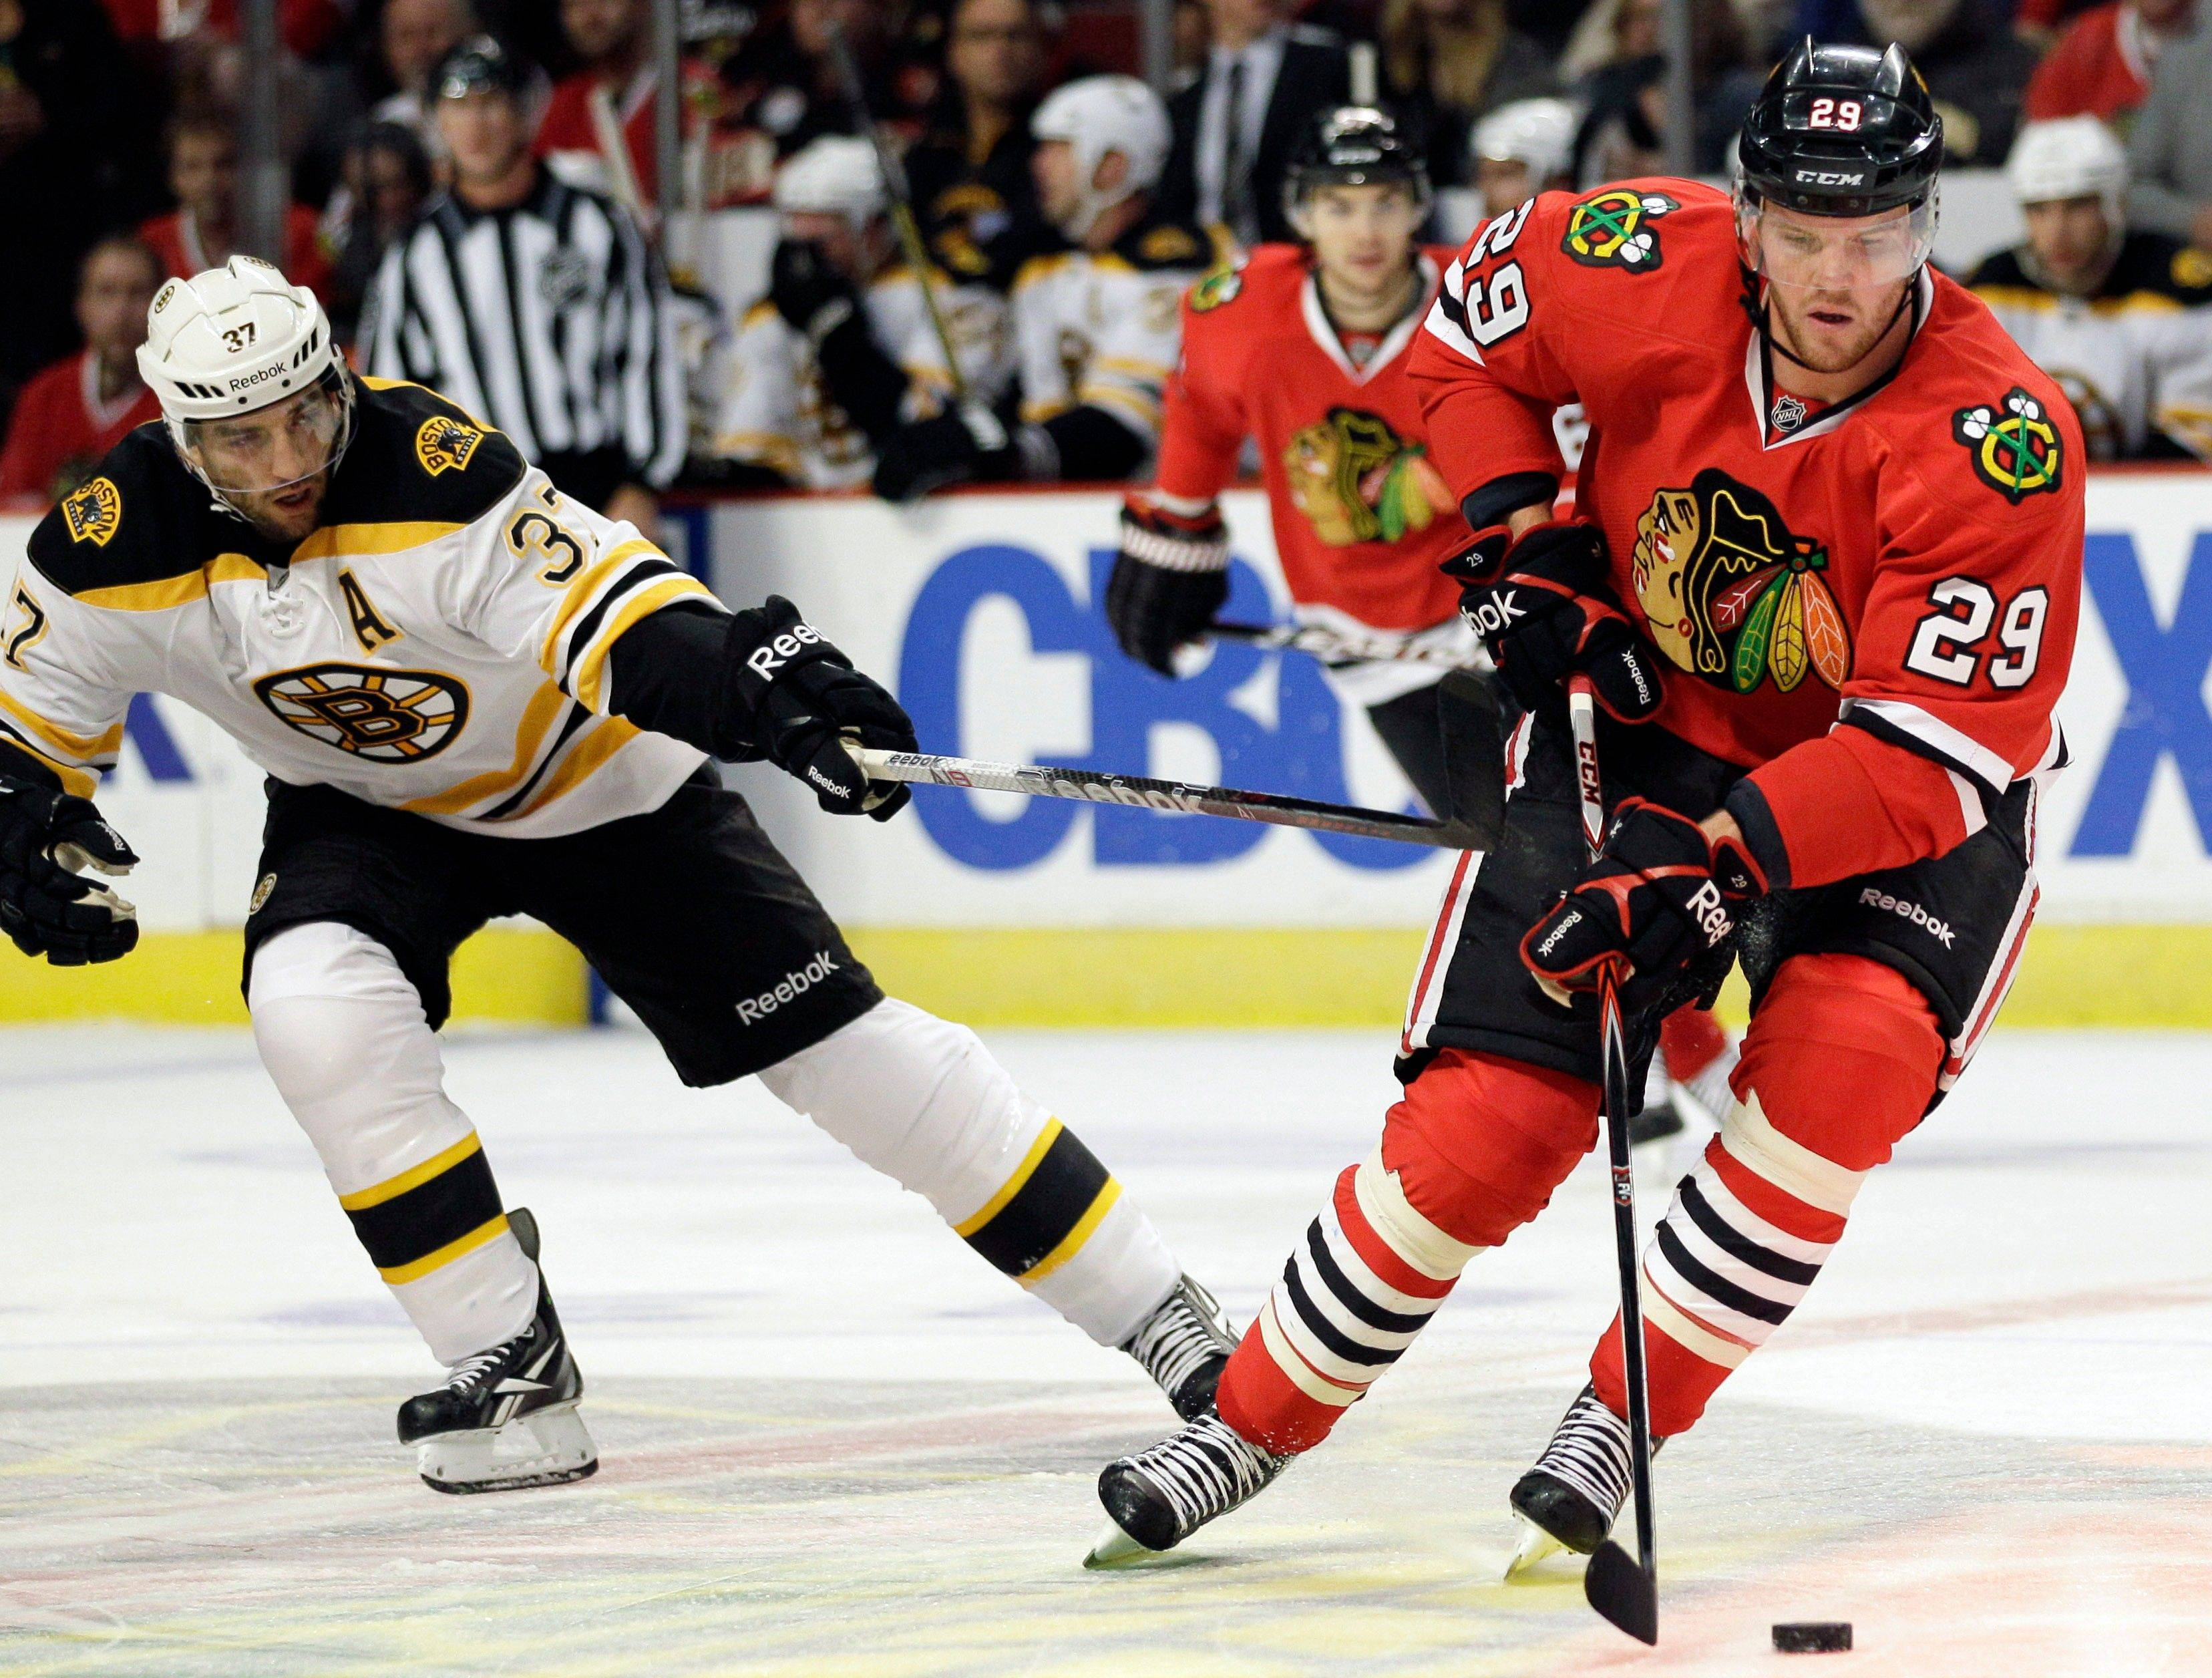 Hawks want Bickell to be a factor again